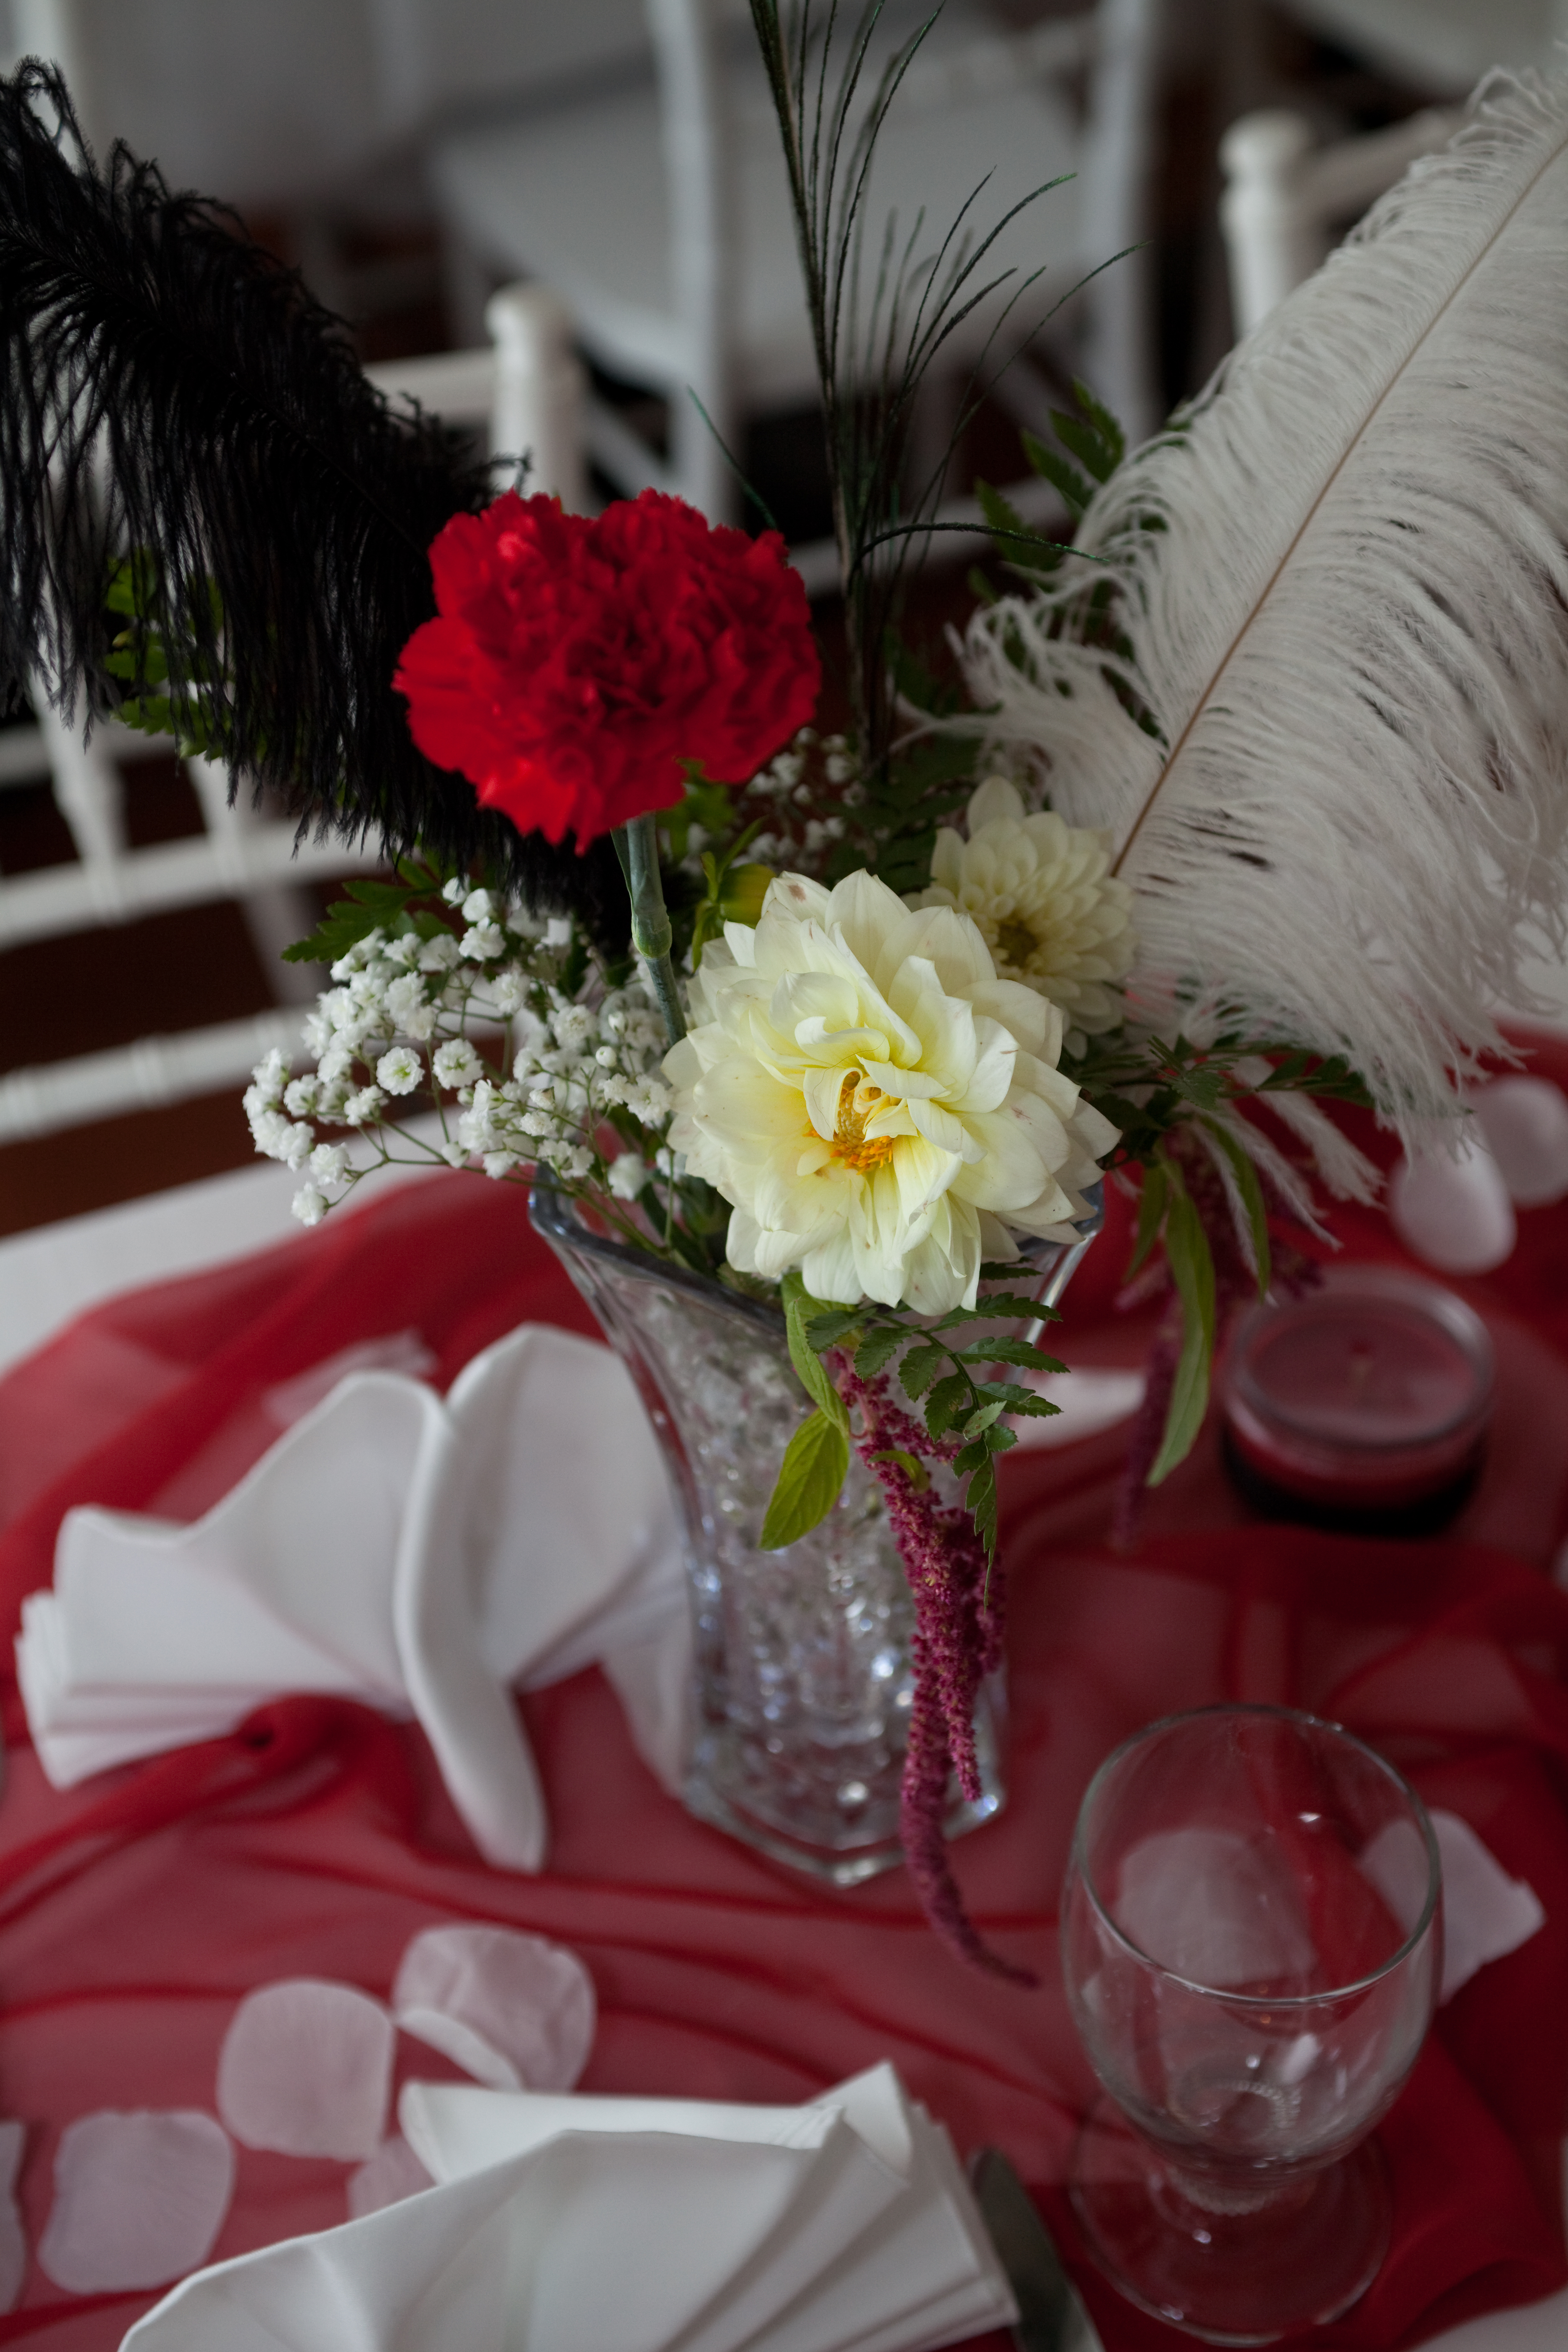 Wedding Table Centerpieces and Flowers